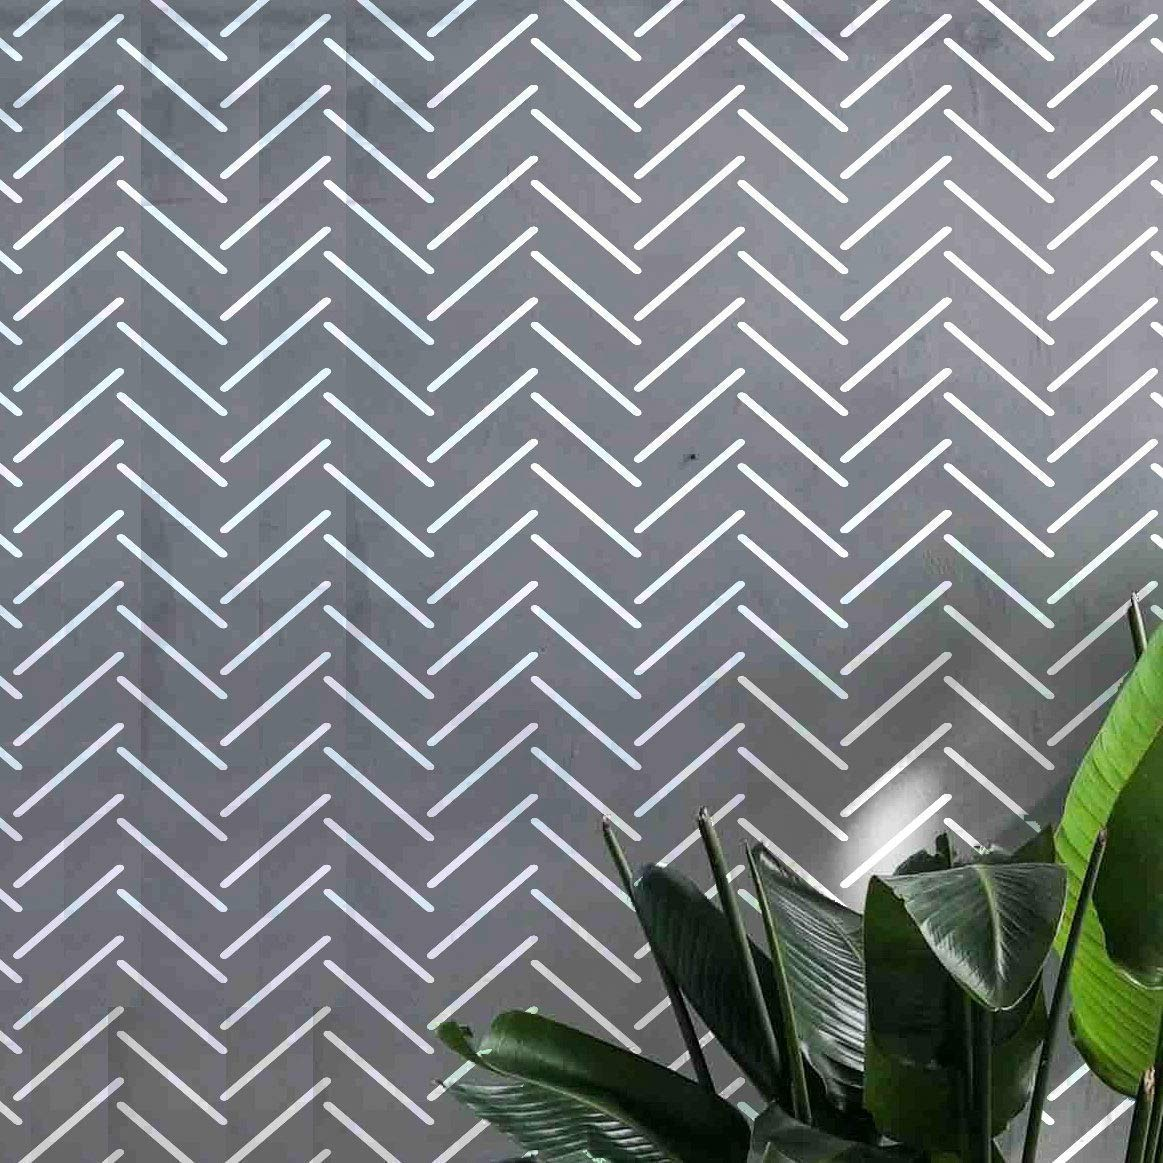 PINKIPO® 【2 Pack】, HERRINGBONE Illusion, Large WALL STENCIL, Modern Wall Stencils for Painting, Stencils For Walls, Simple, Wall Stencil Pattern